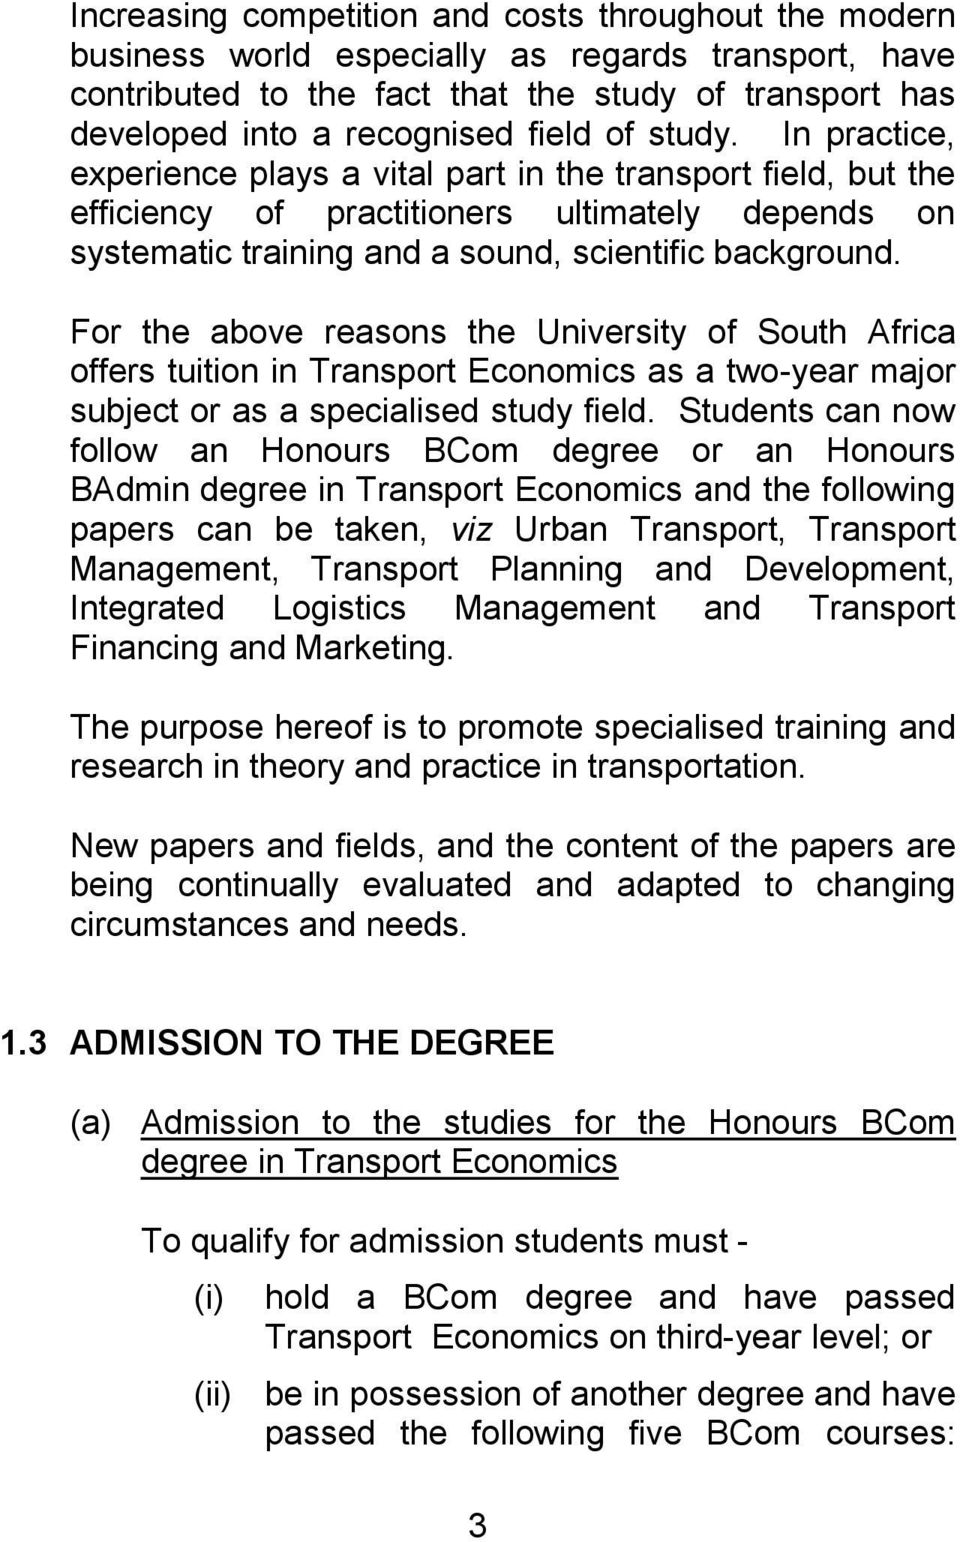 For the above reasons the University of South Africa offers tuition in Transport Economics as a two-year major subject or as a specialised study field.